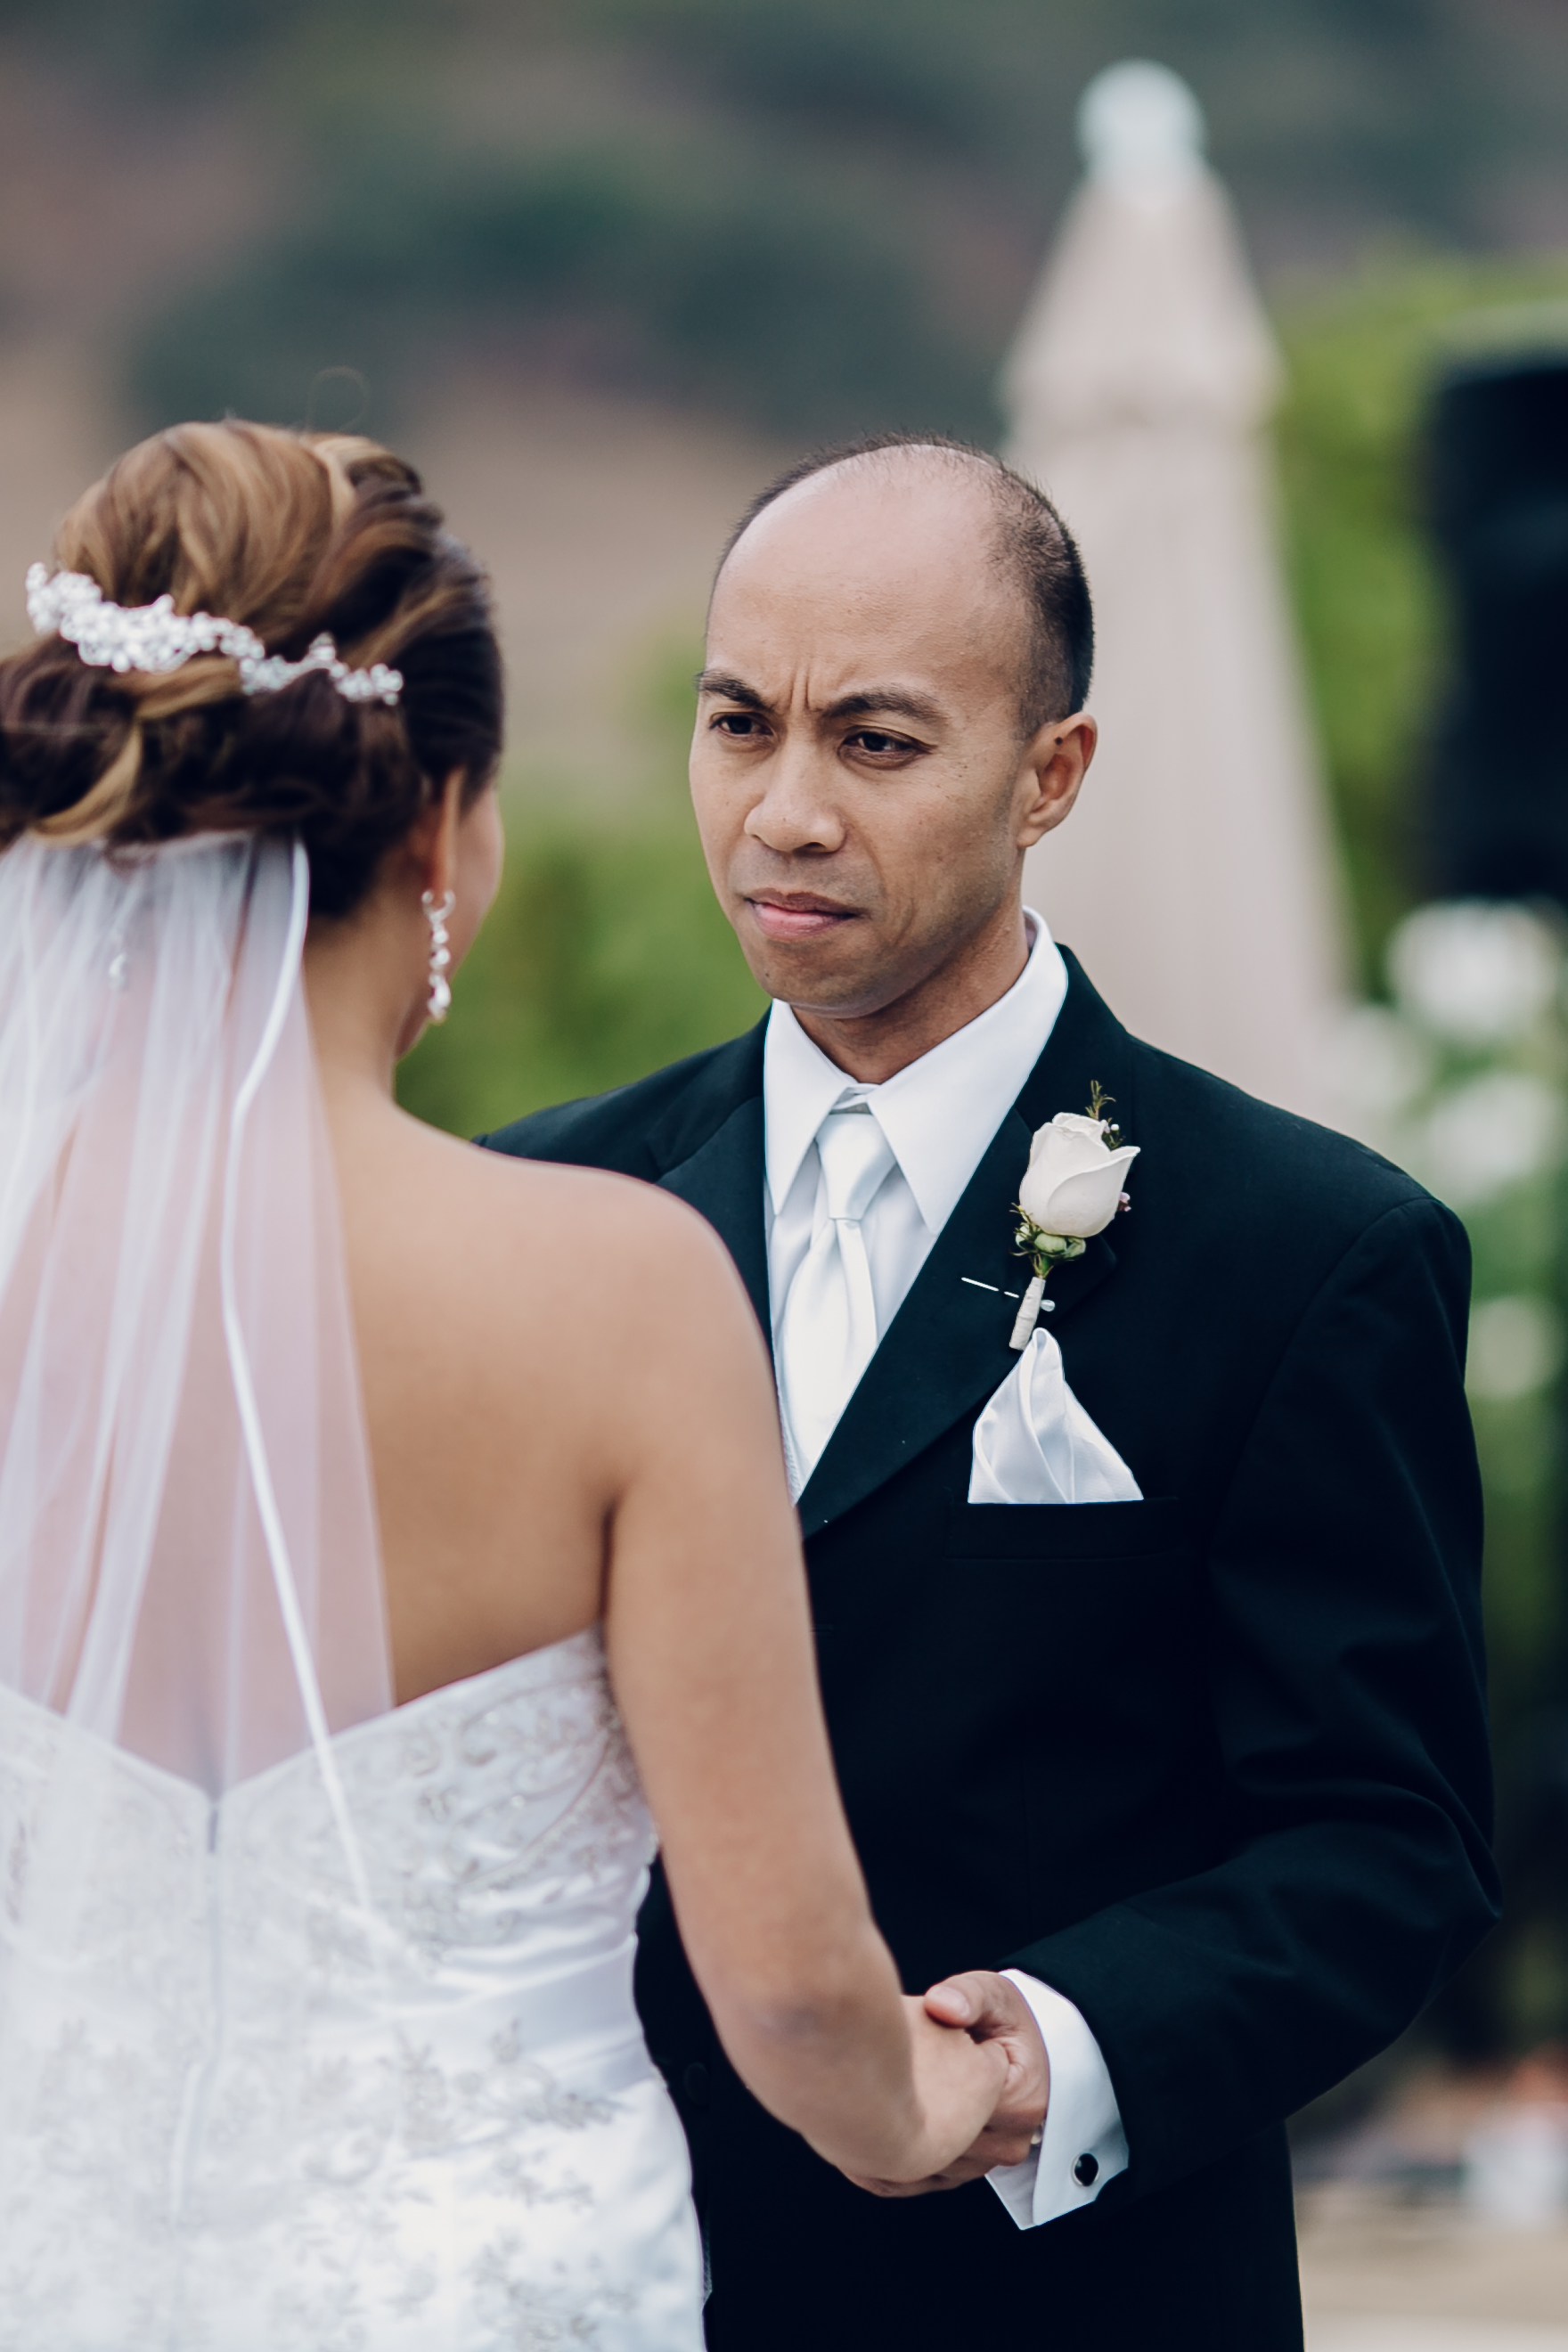 Shiela + Lester's Wedding 9-30-15 125.jpg